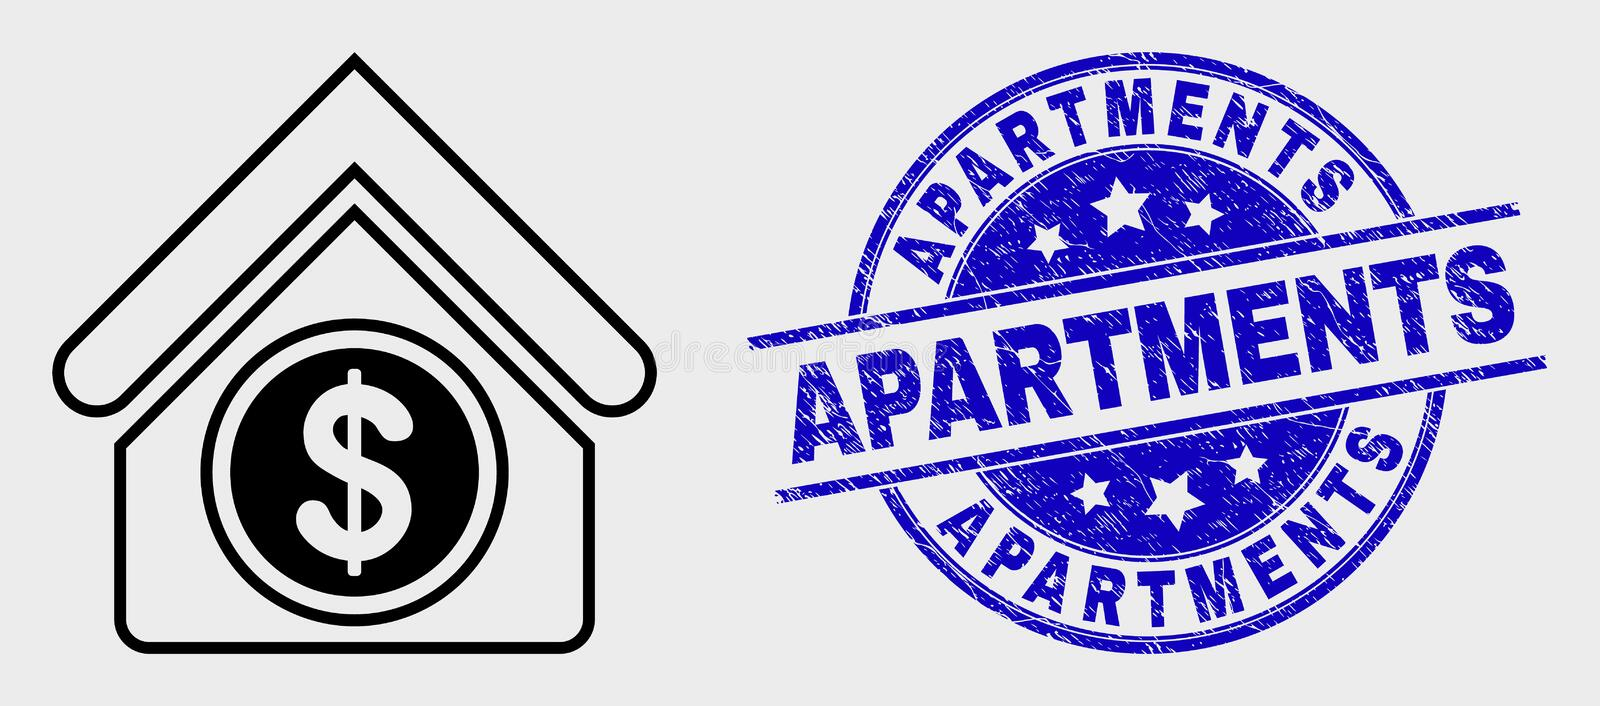 Vector Stroke Commercial Building Icon and Distress Apartments Watermark. Vector stroke commercial building pictogram and Apartments stamp. Blue round grunge vector illustration